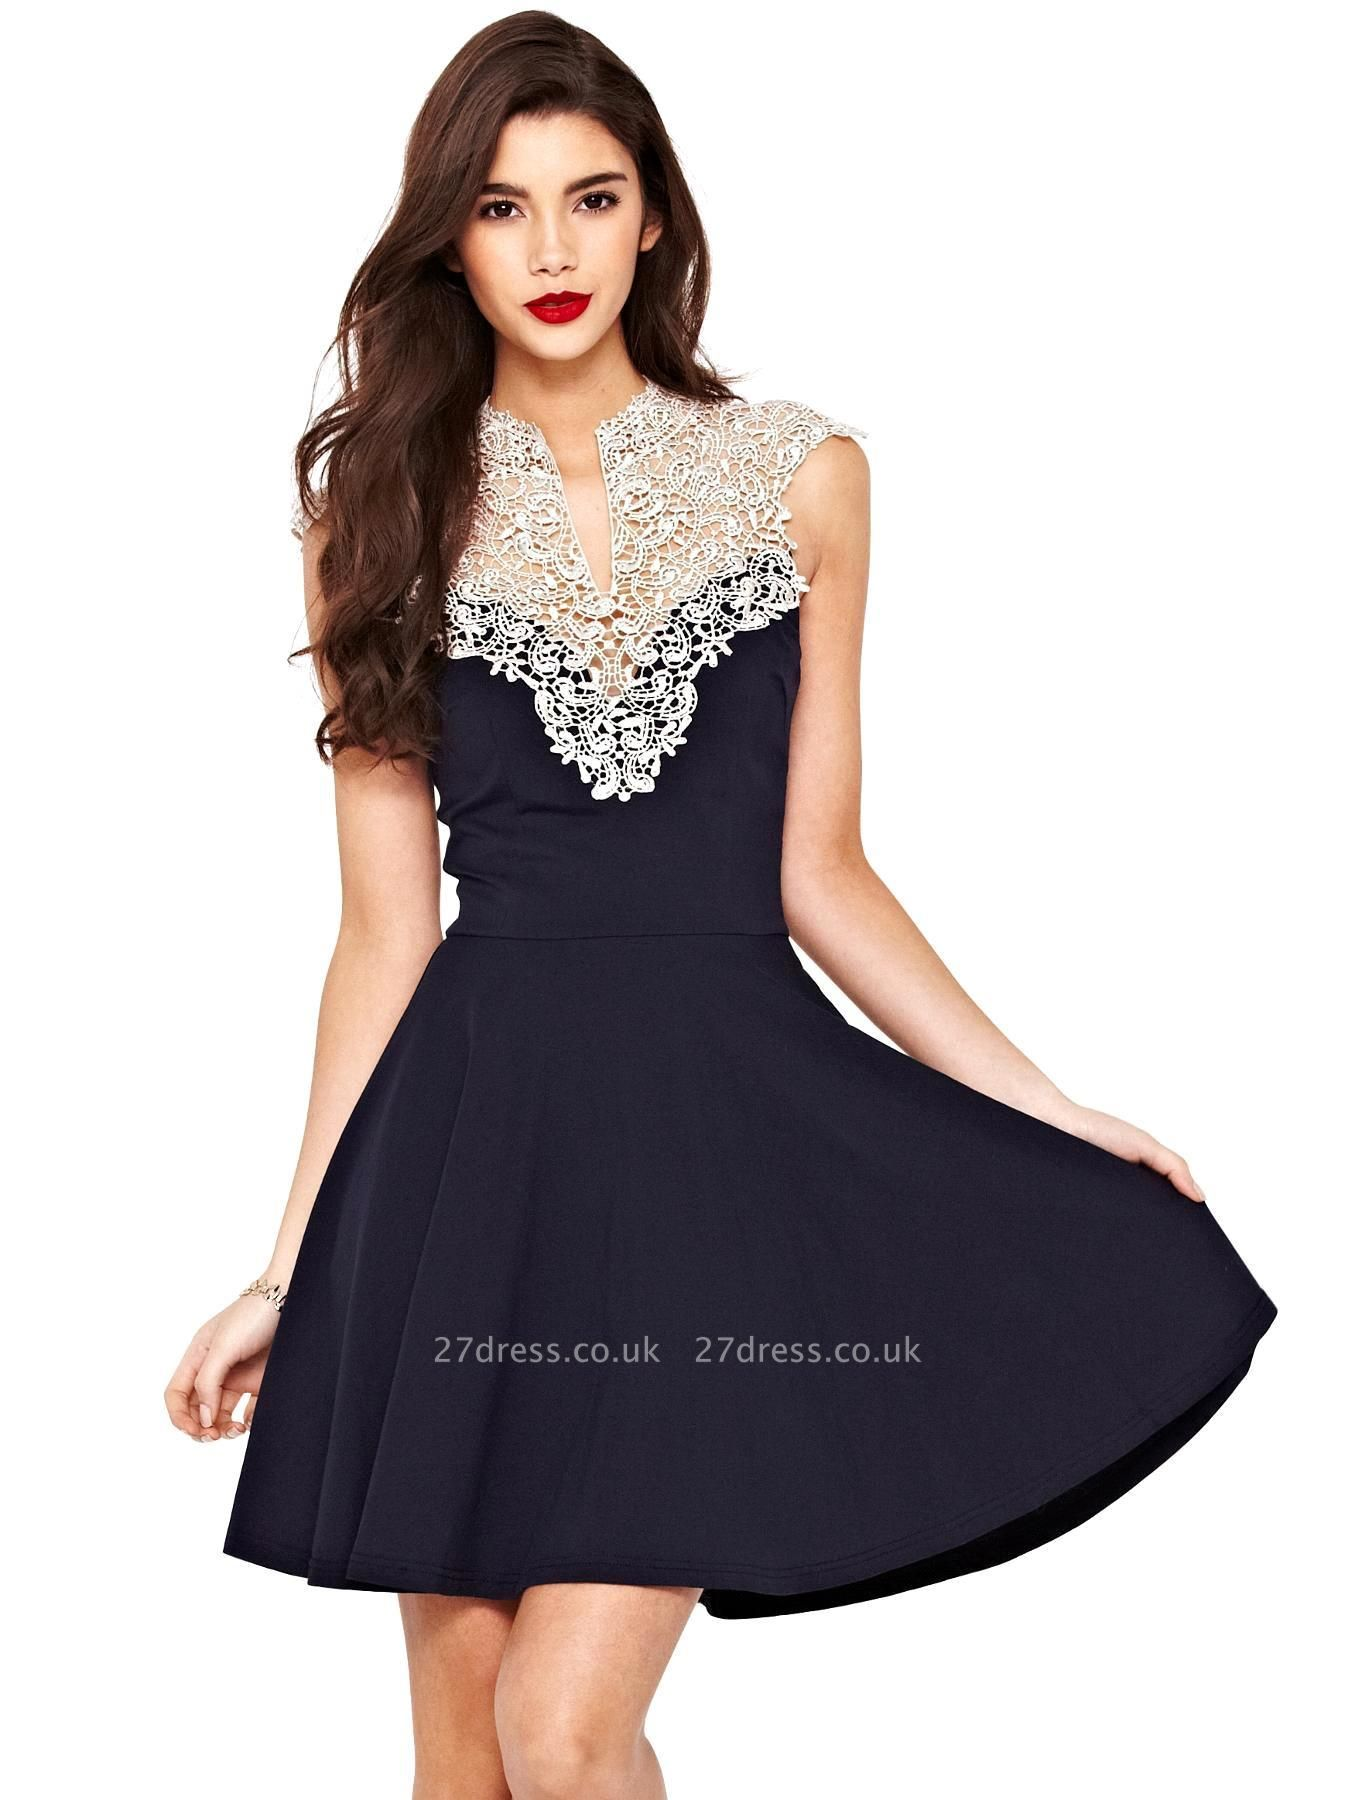 Beautiful Lace Cap Sleeve Short Prom Dress UK A-Line Homecoming Dress UK